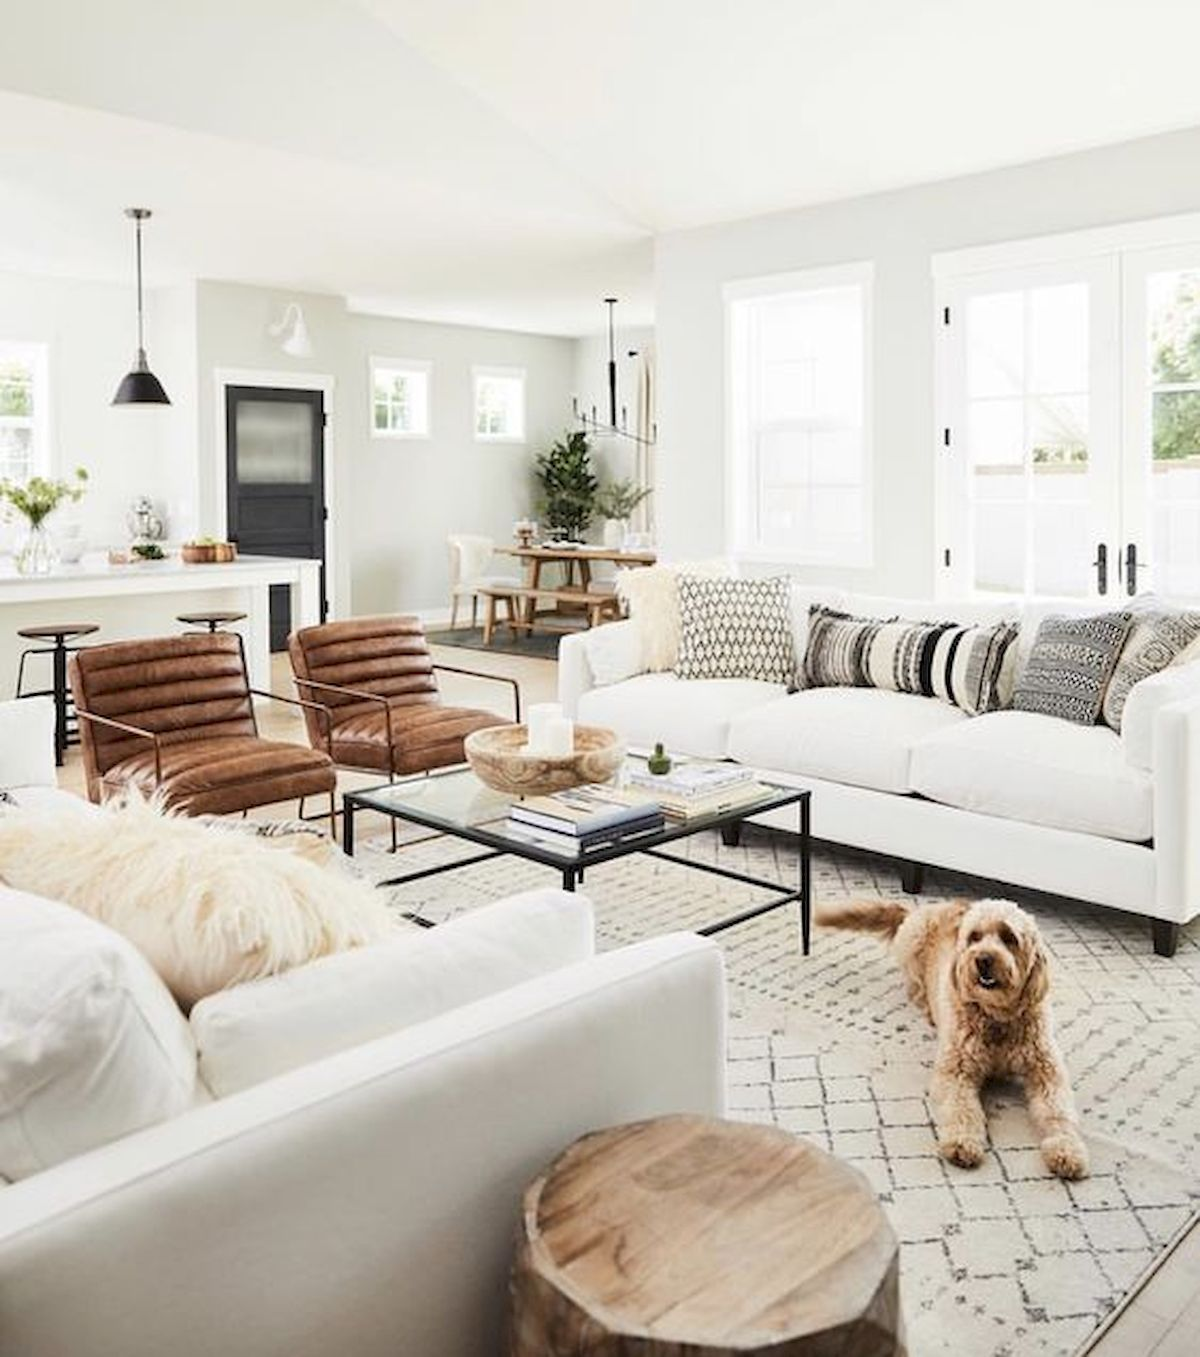 Pin By Yen Allo On Home Living Room Sofa Design Farm House Living Room Living Room Inspiration